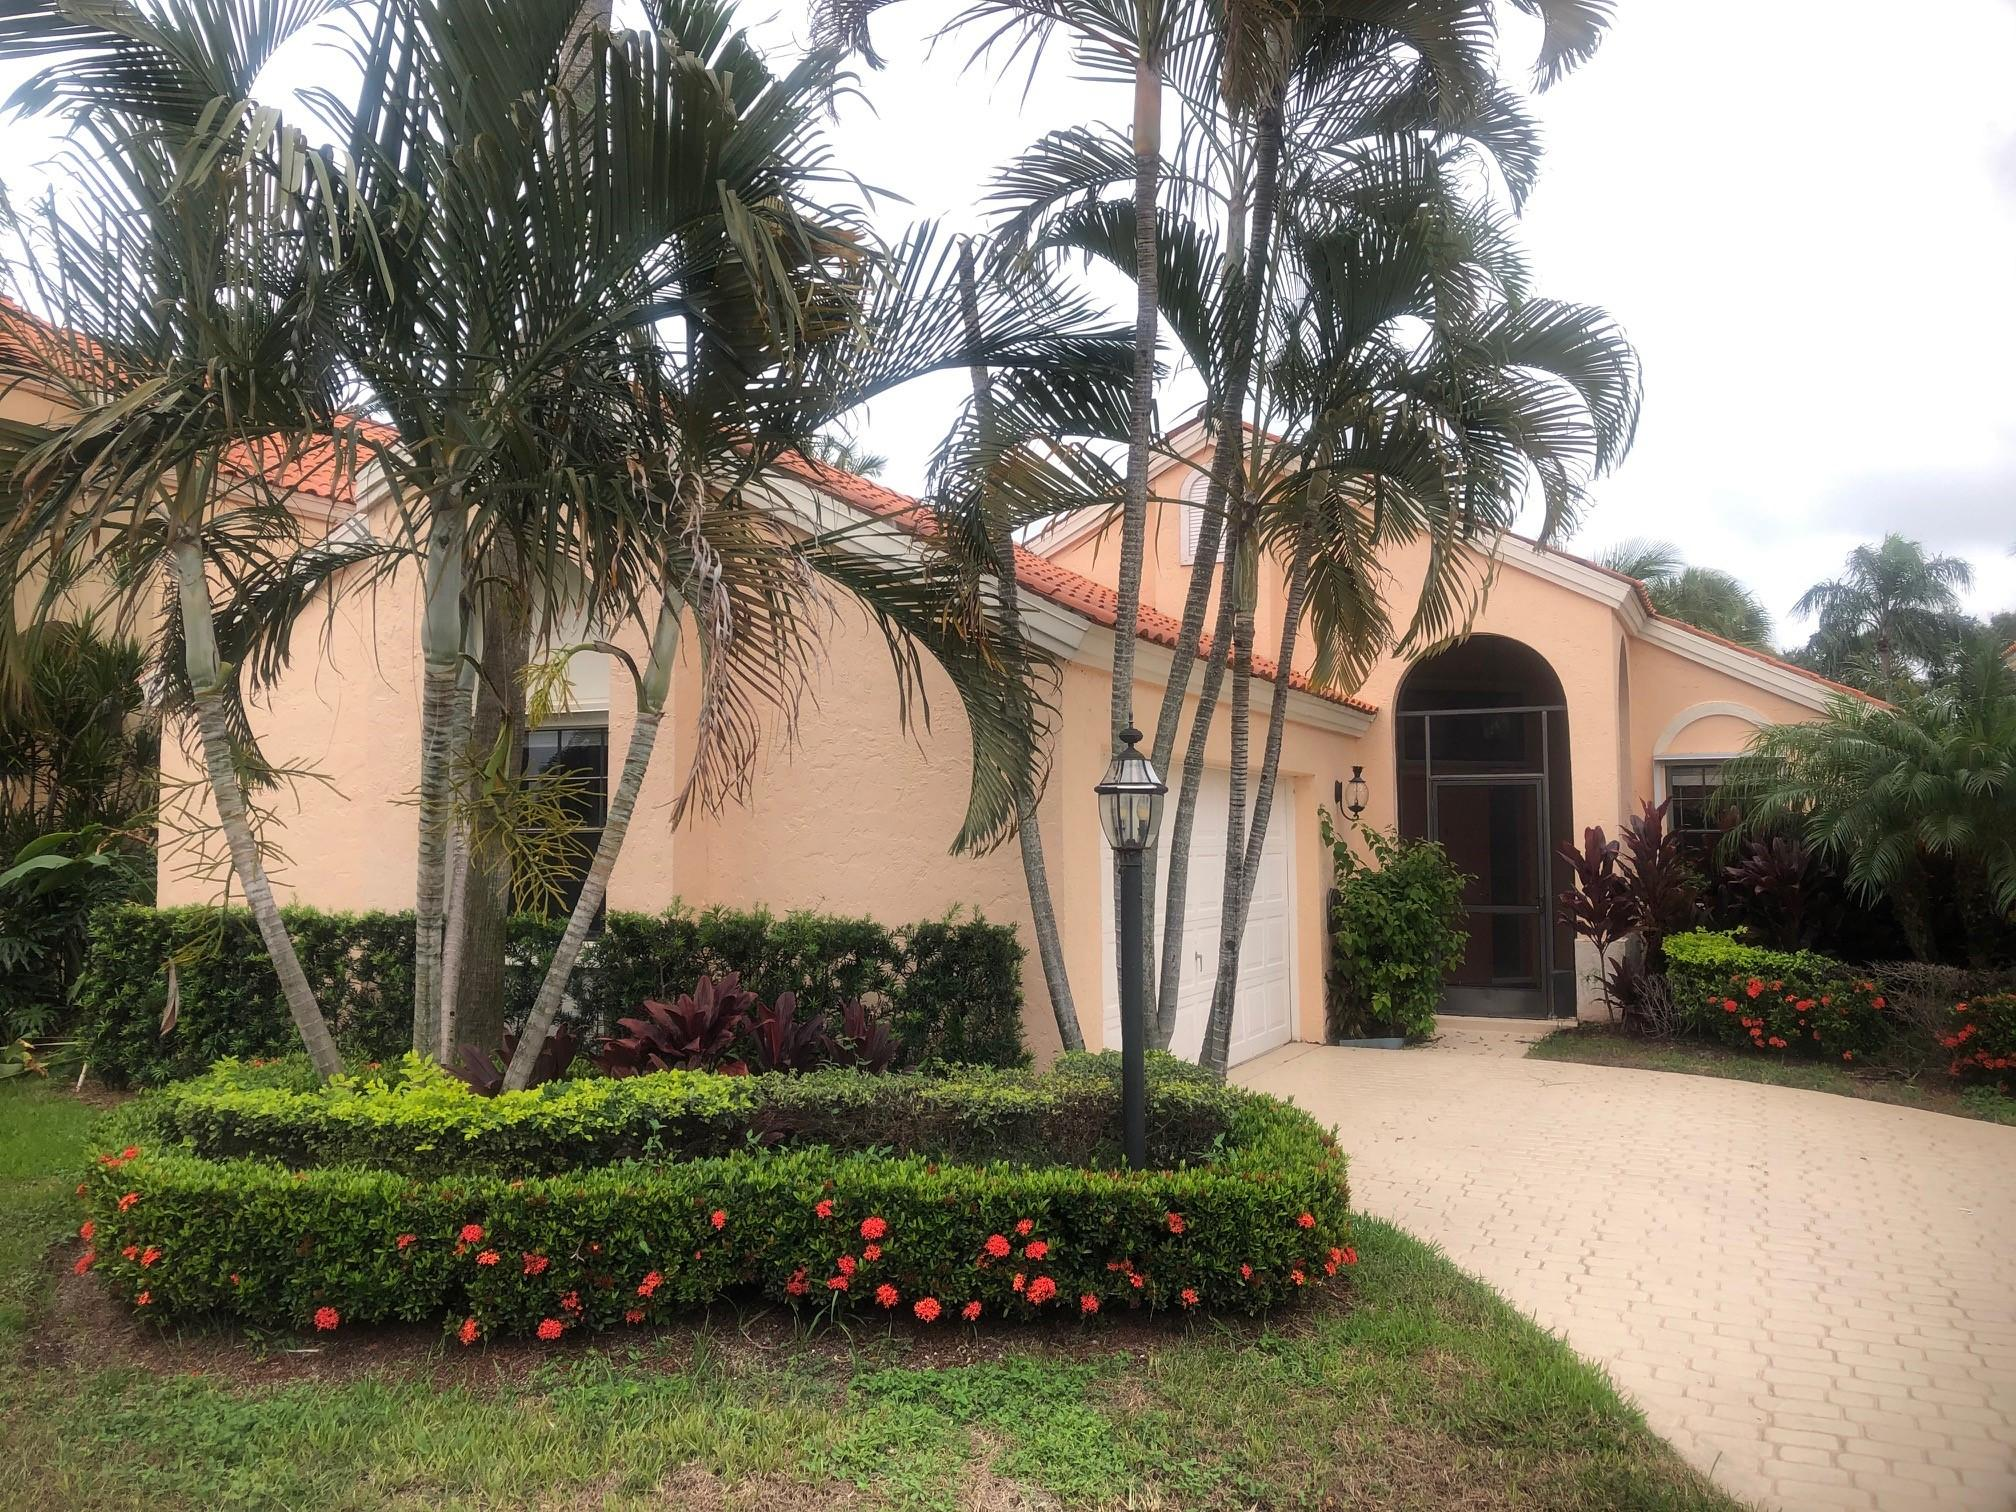 Home for sale in St Tropez Palm Beach Gardens Florida